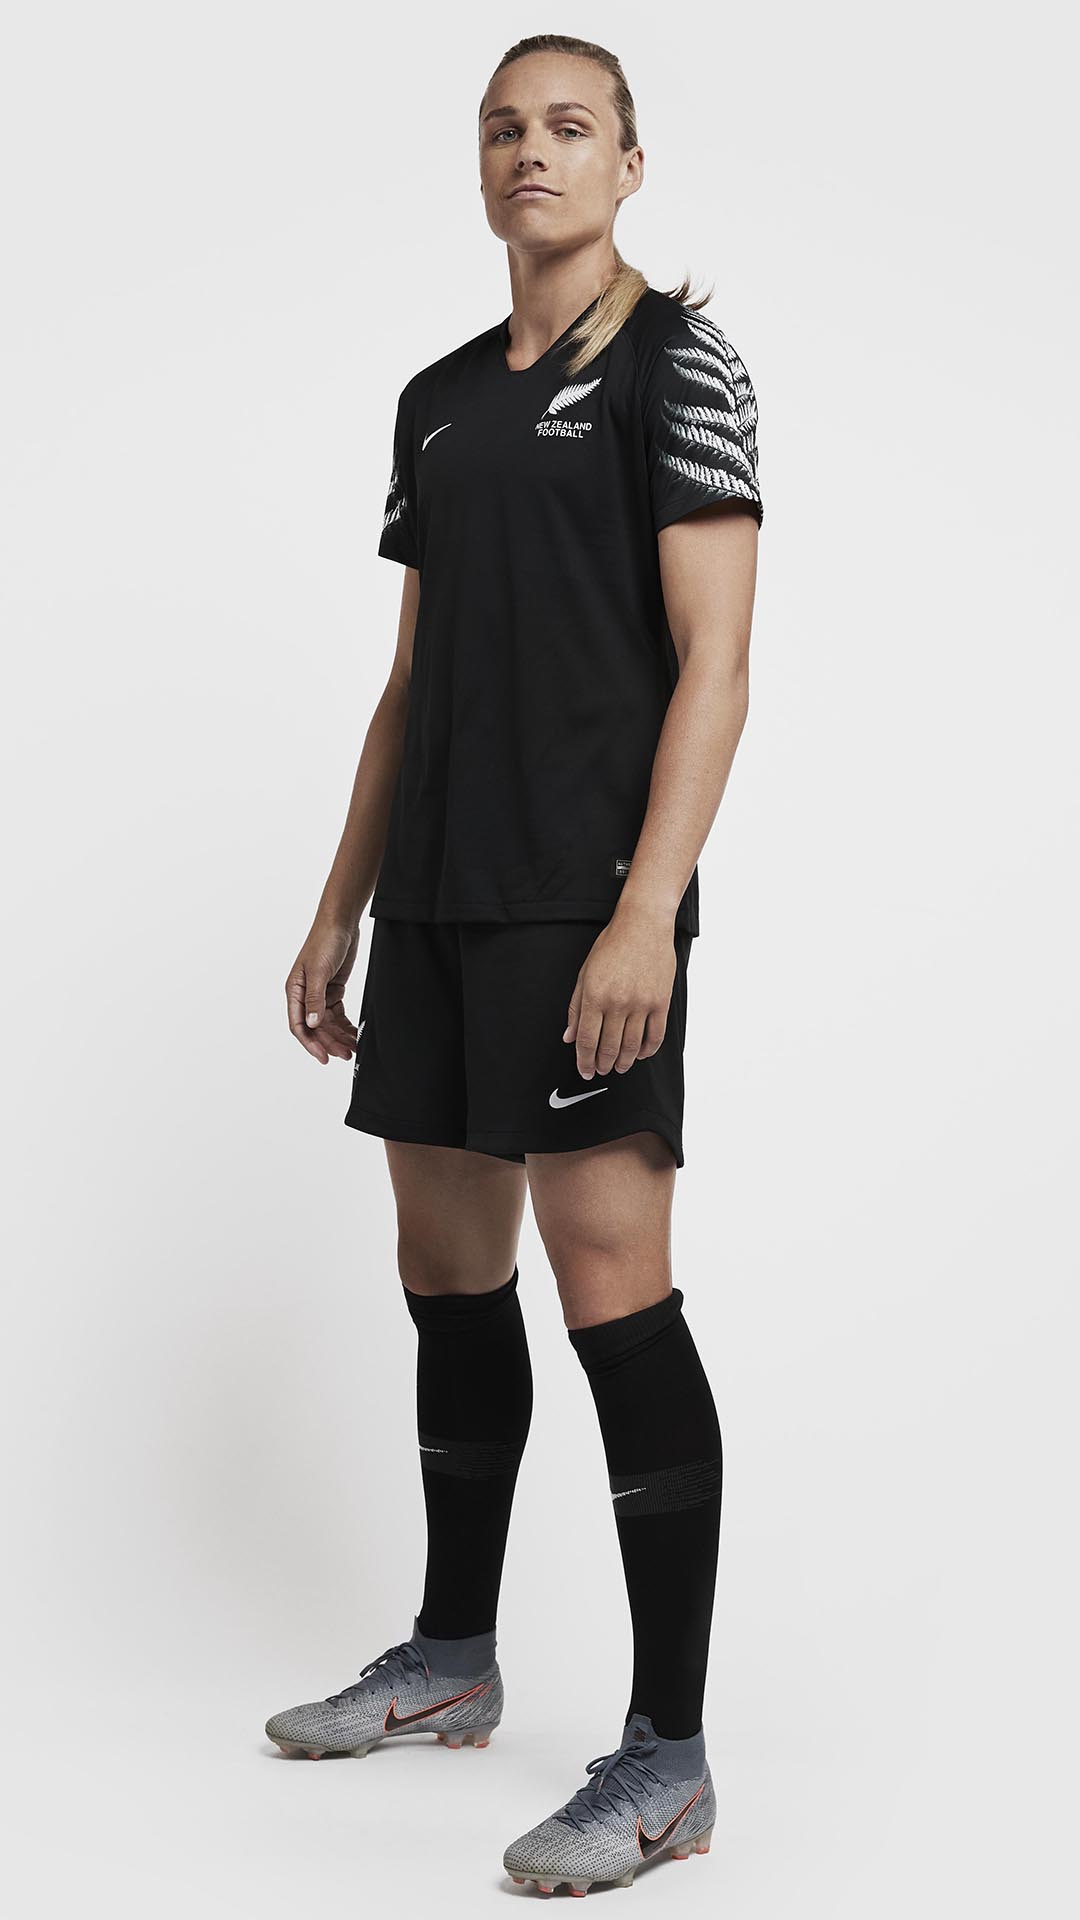 Nike_National_Team_Kit_Neuseeland_9.jpg